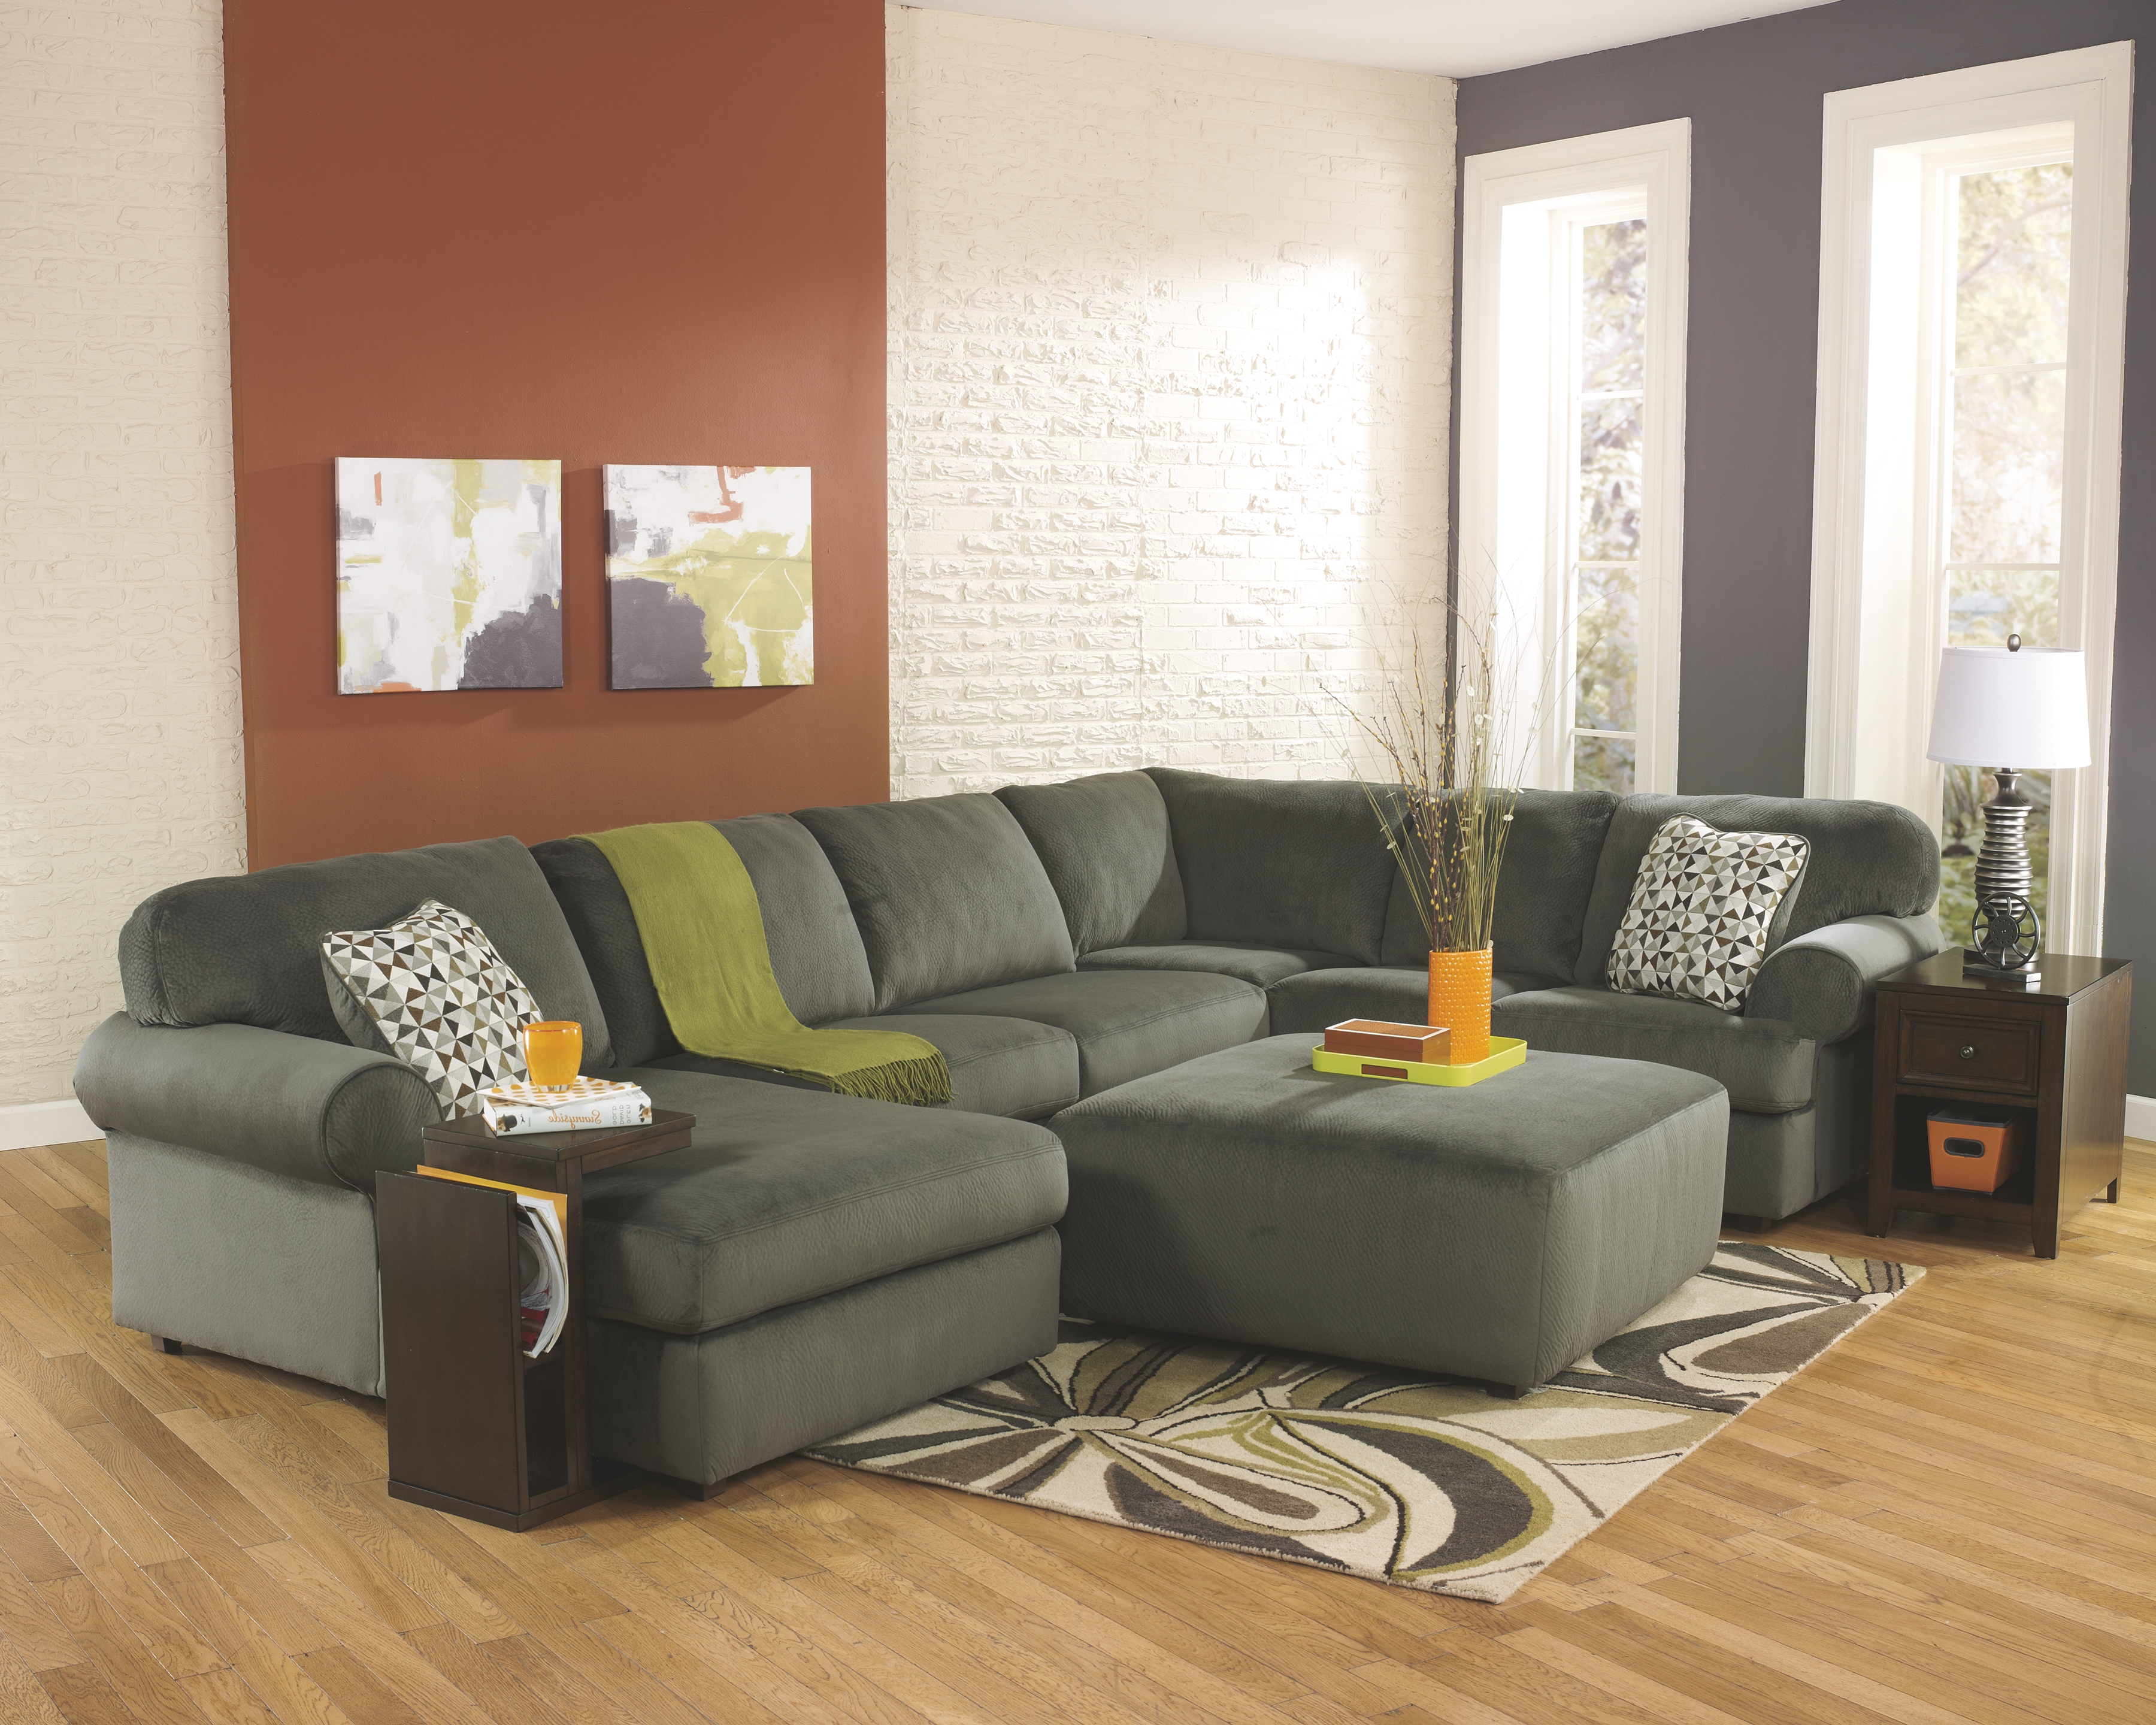 Terrific Jessa Place 3 Piece Sectional With Ottoman Products Alphanode Cool Chair Designs And Ideas Alphanodeonline